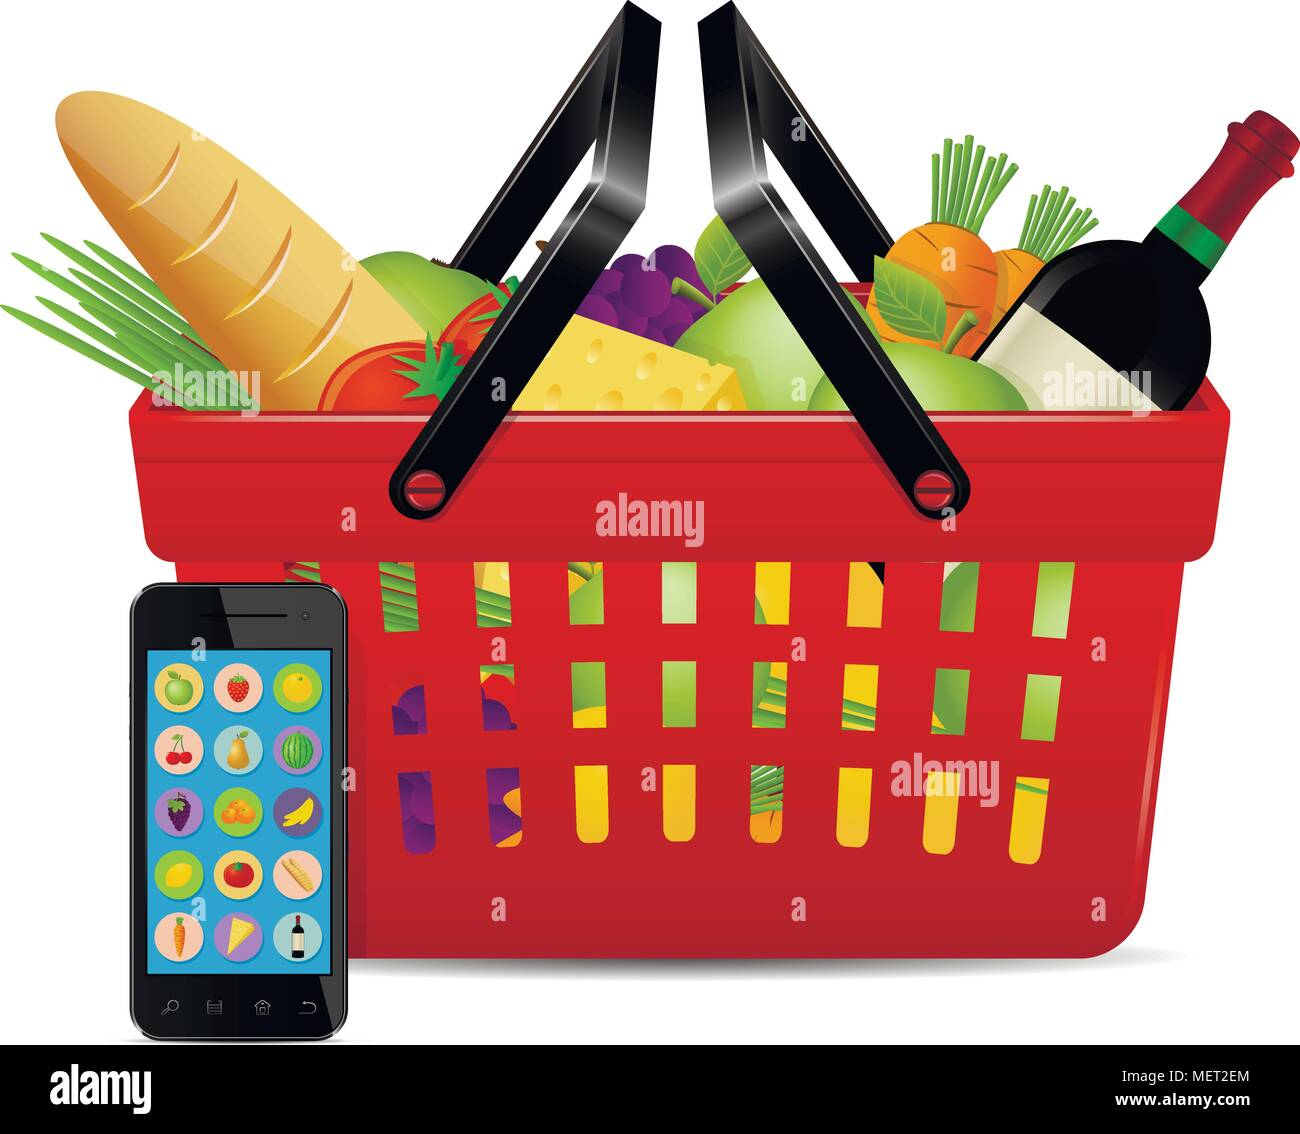 Food ordered online with use of smartphone. Online shopping concept. - Stock Vector